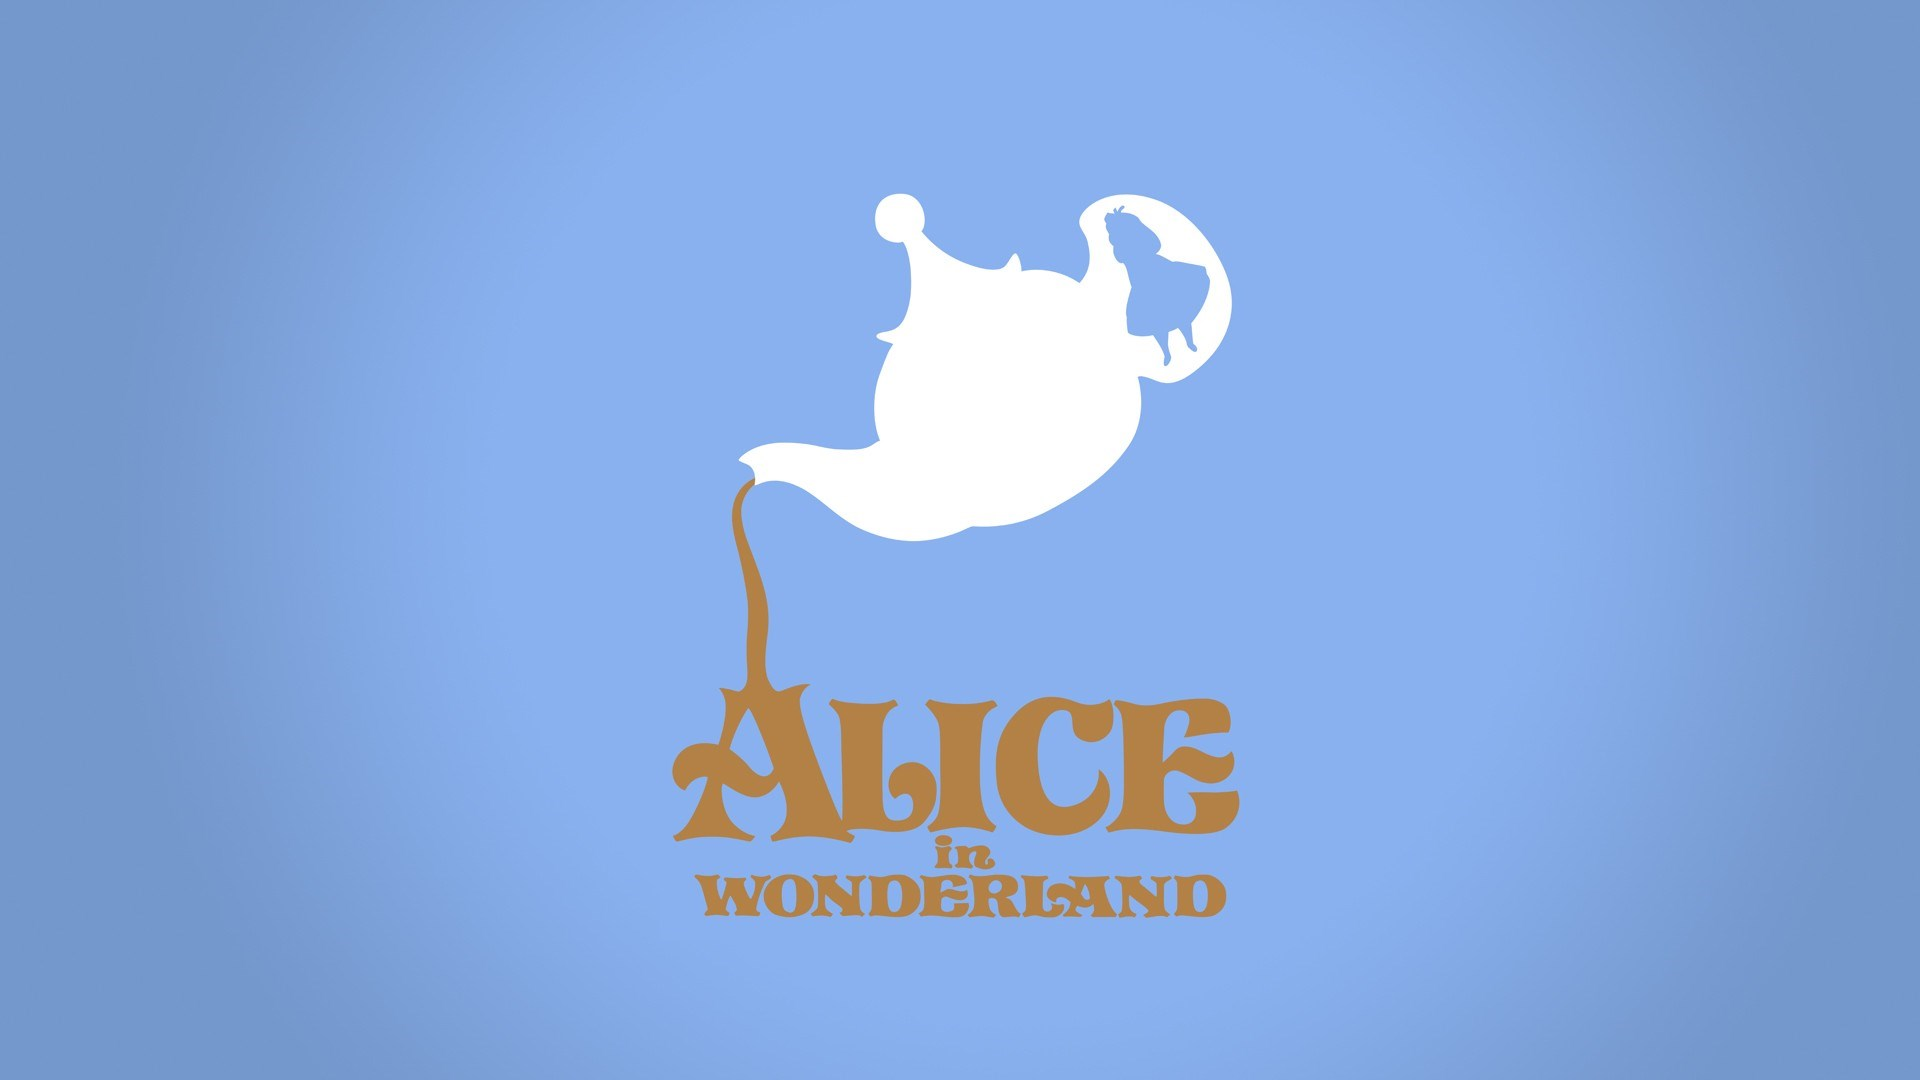 alice-in-wonderland-Google-pretraživanje-wallpaper-wpc9202267